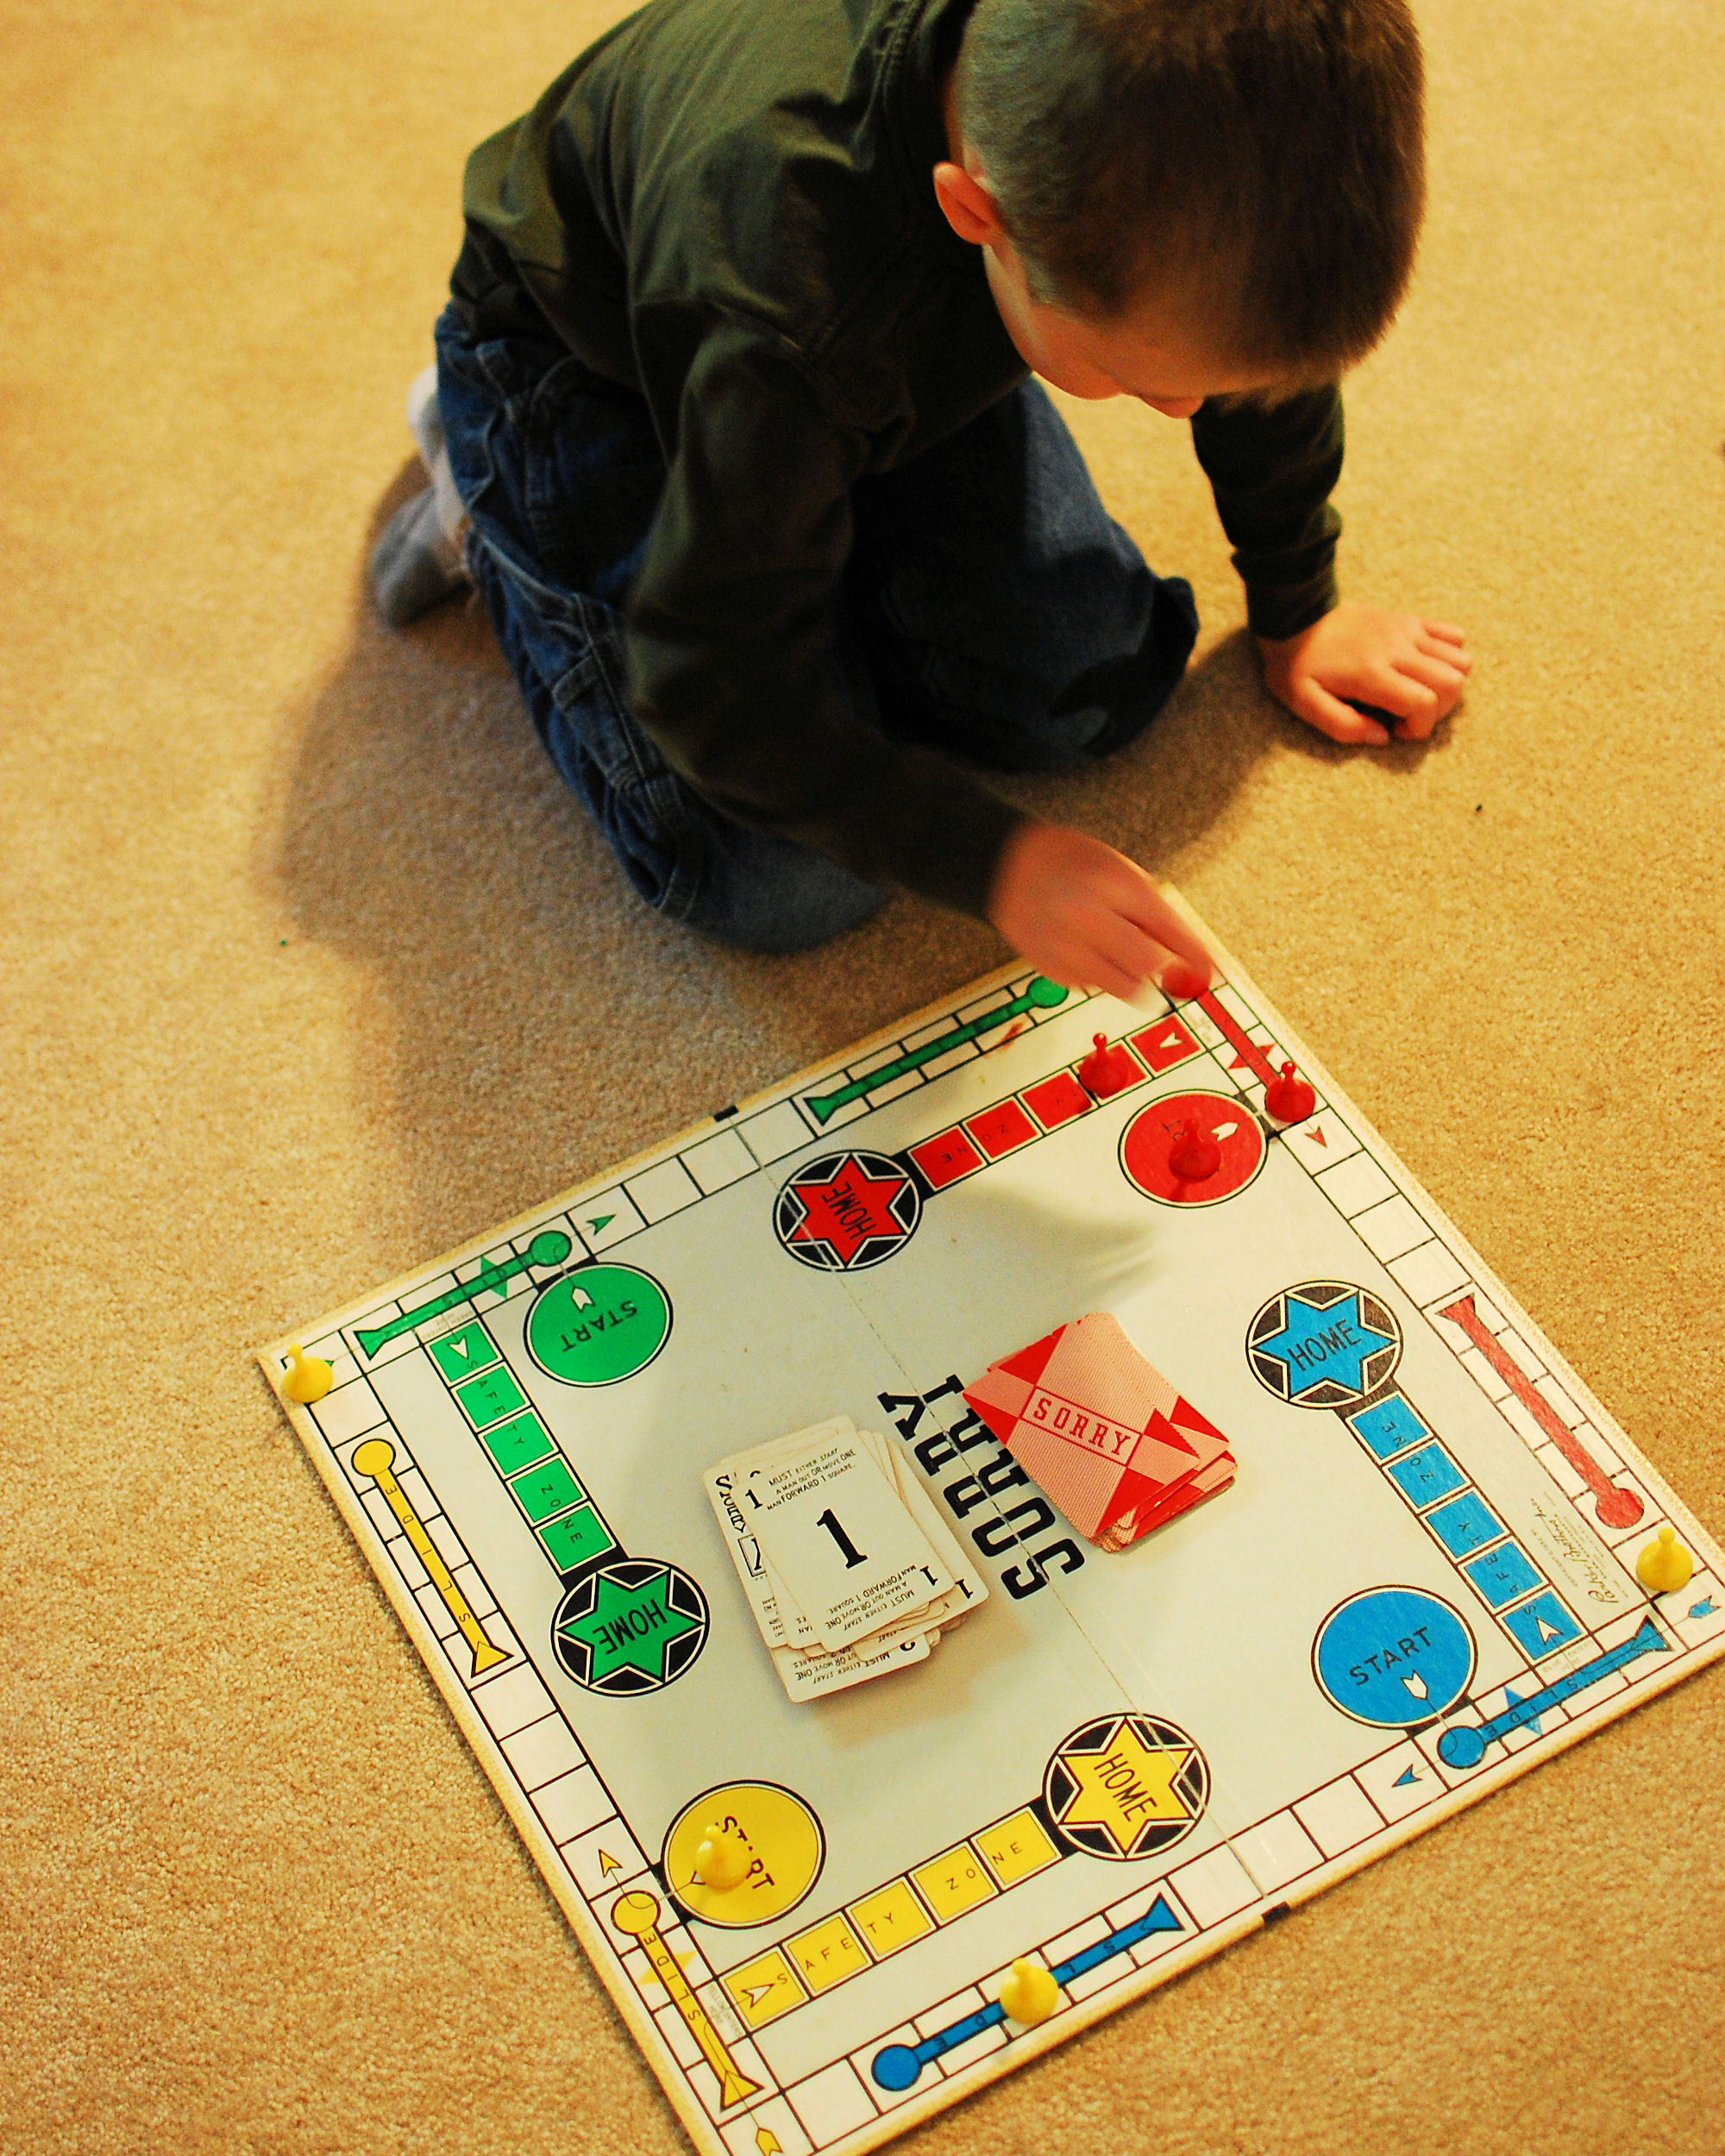 10 Game Ideas for 4-7 year olds - Heather Haupt